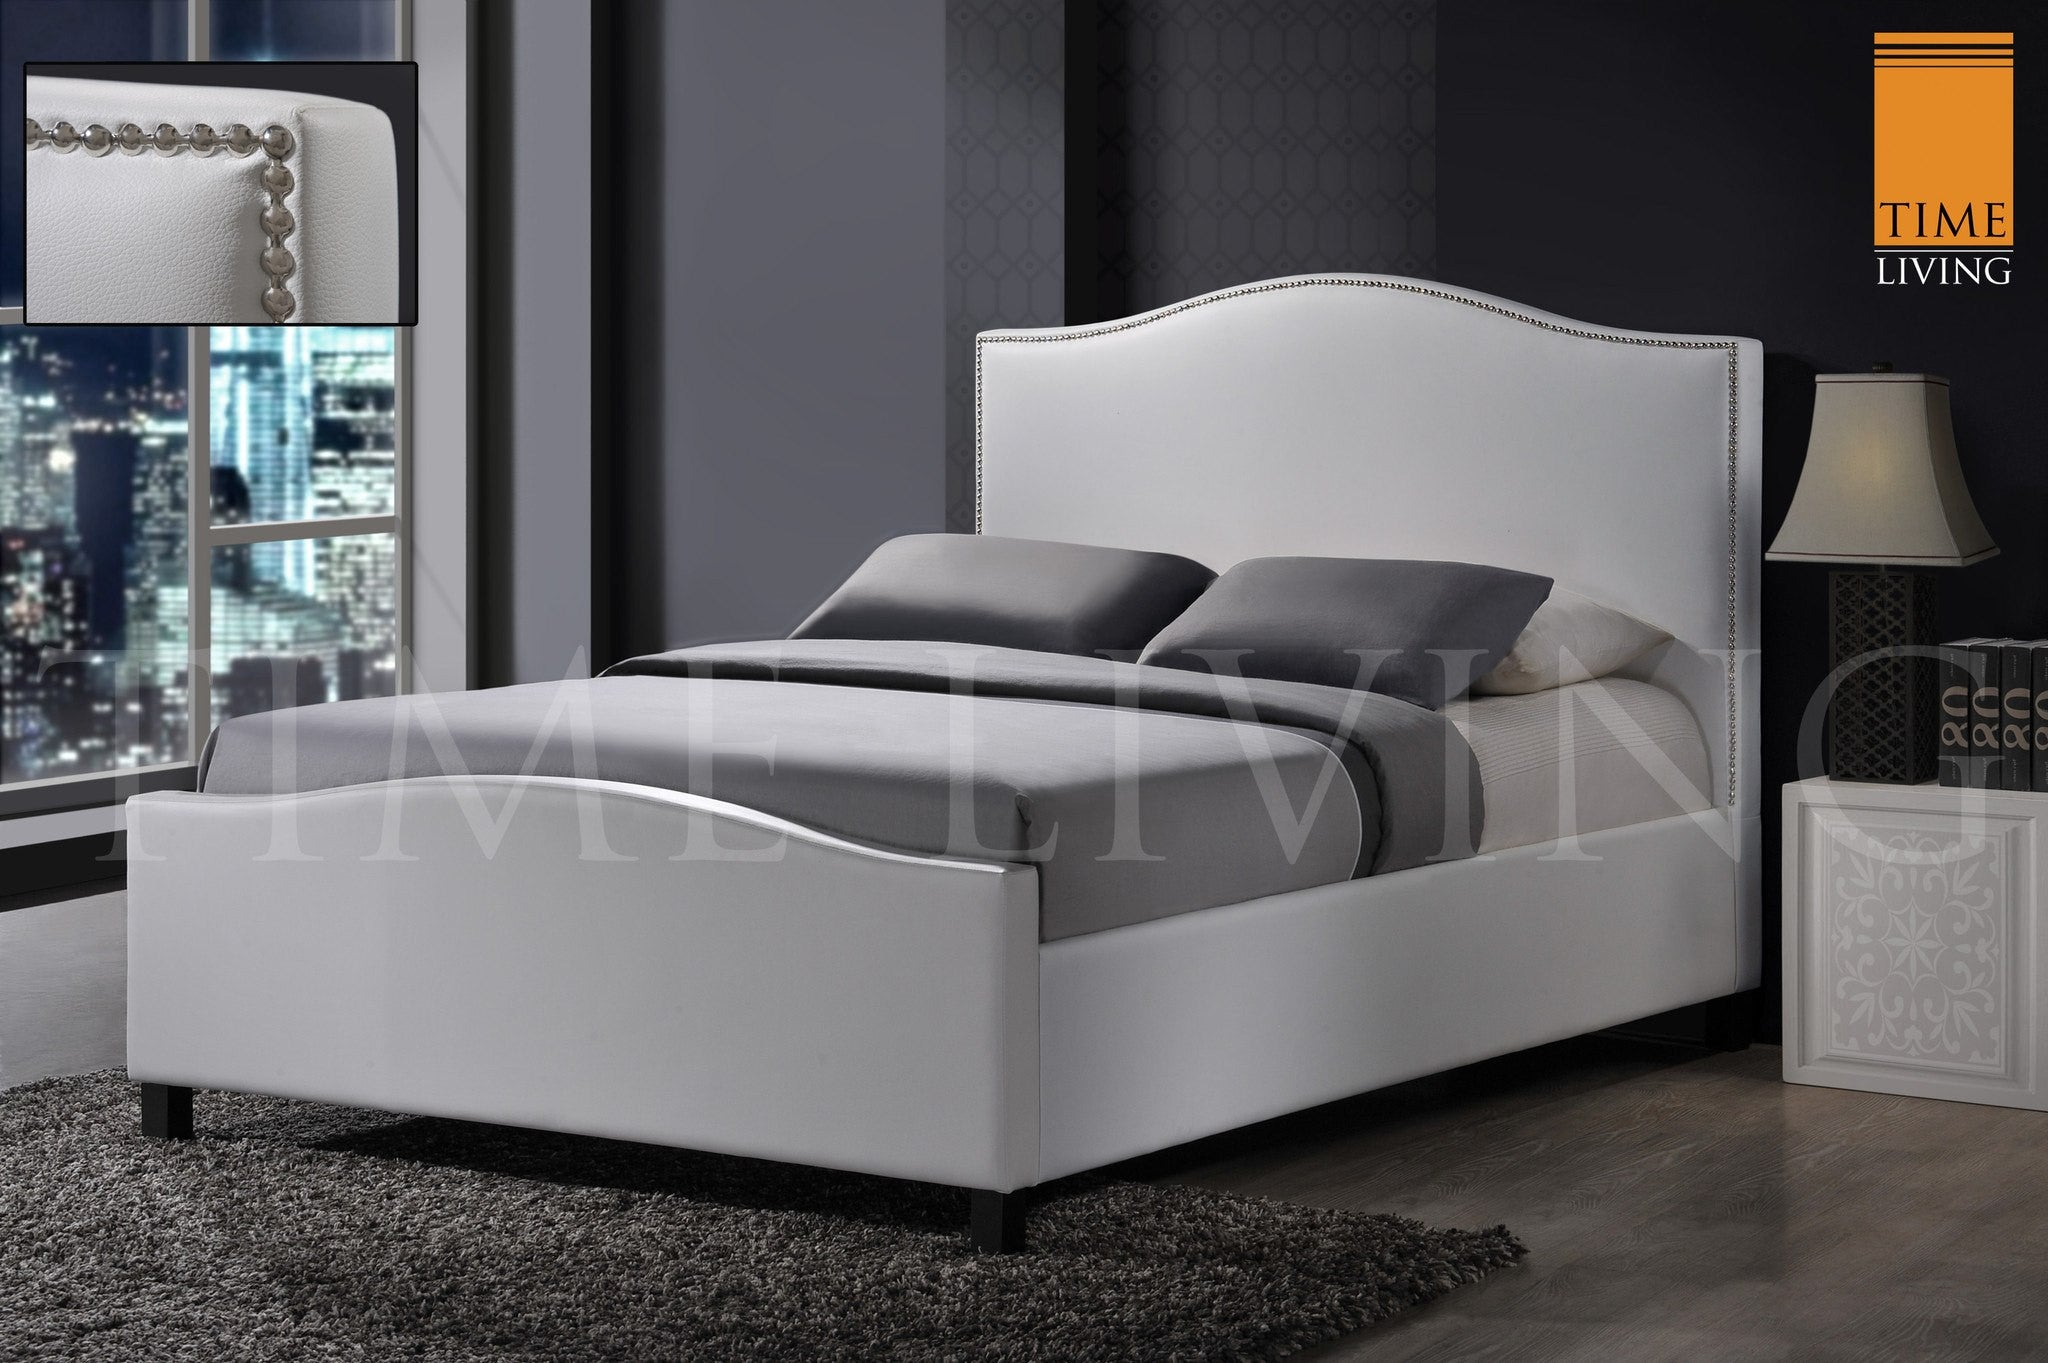 TIME LIVING Tuxford White Faux Leather Bed Frame